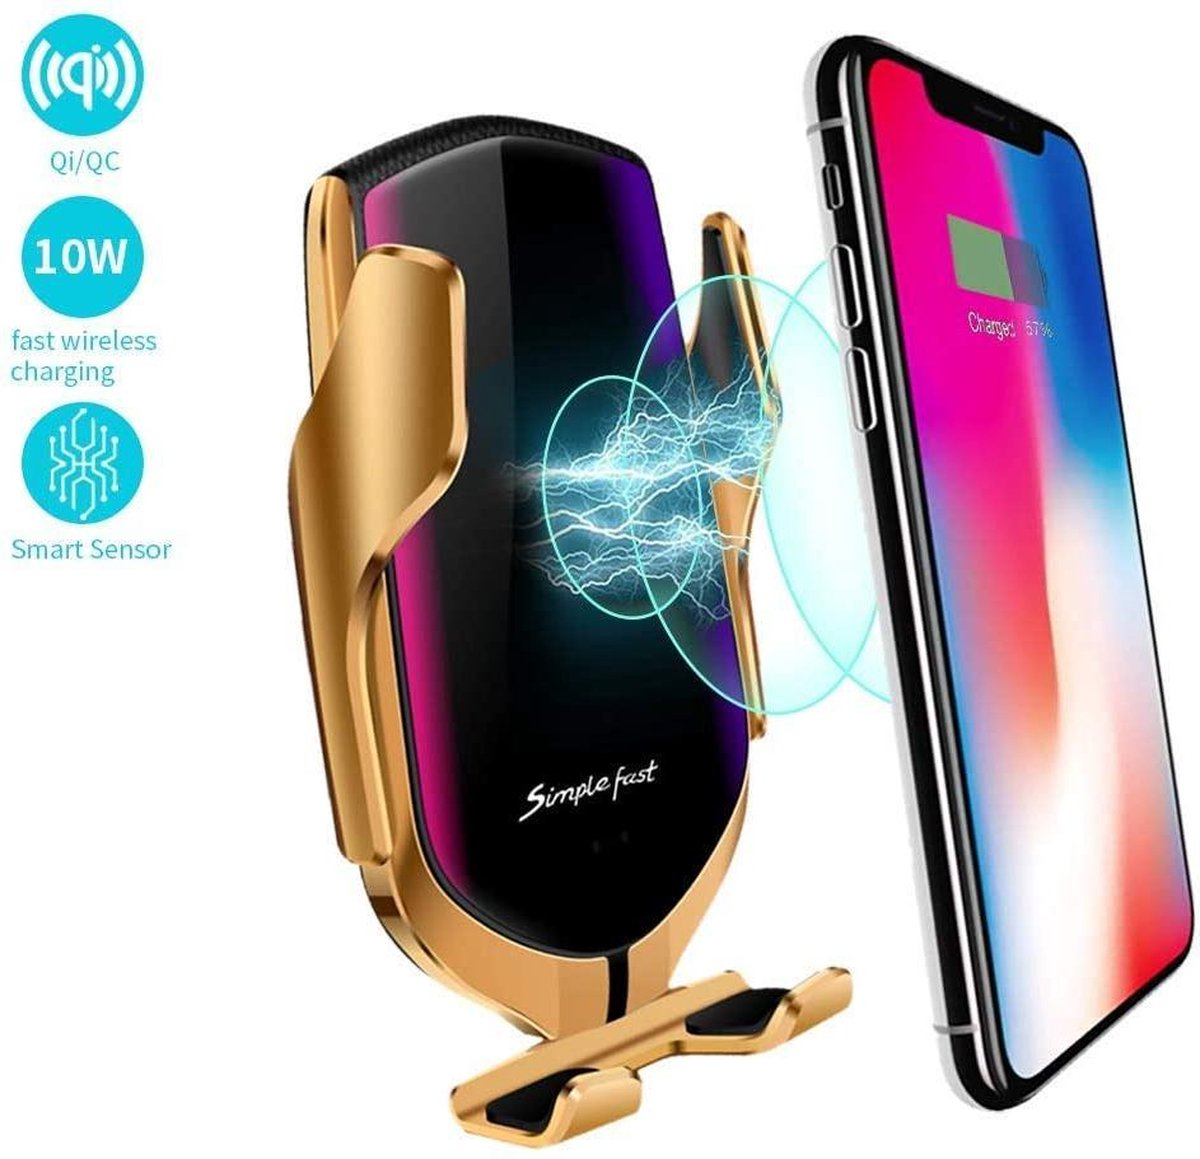 Auto Oplader Draadloos - Wireless Charger - Telefoonhouder - Draadloos Opladen Smartphone - Telefoon Houder Met Autolader iPhone 12 / 11 / Pro / Mini Max / Xs / Xs Max / XR / X /8 / 7 / Samsung Galaxy Note 9 / 10 / 20 / S10 / S20 Plus Ultra - goud